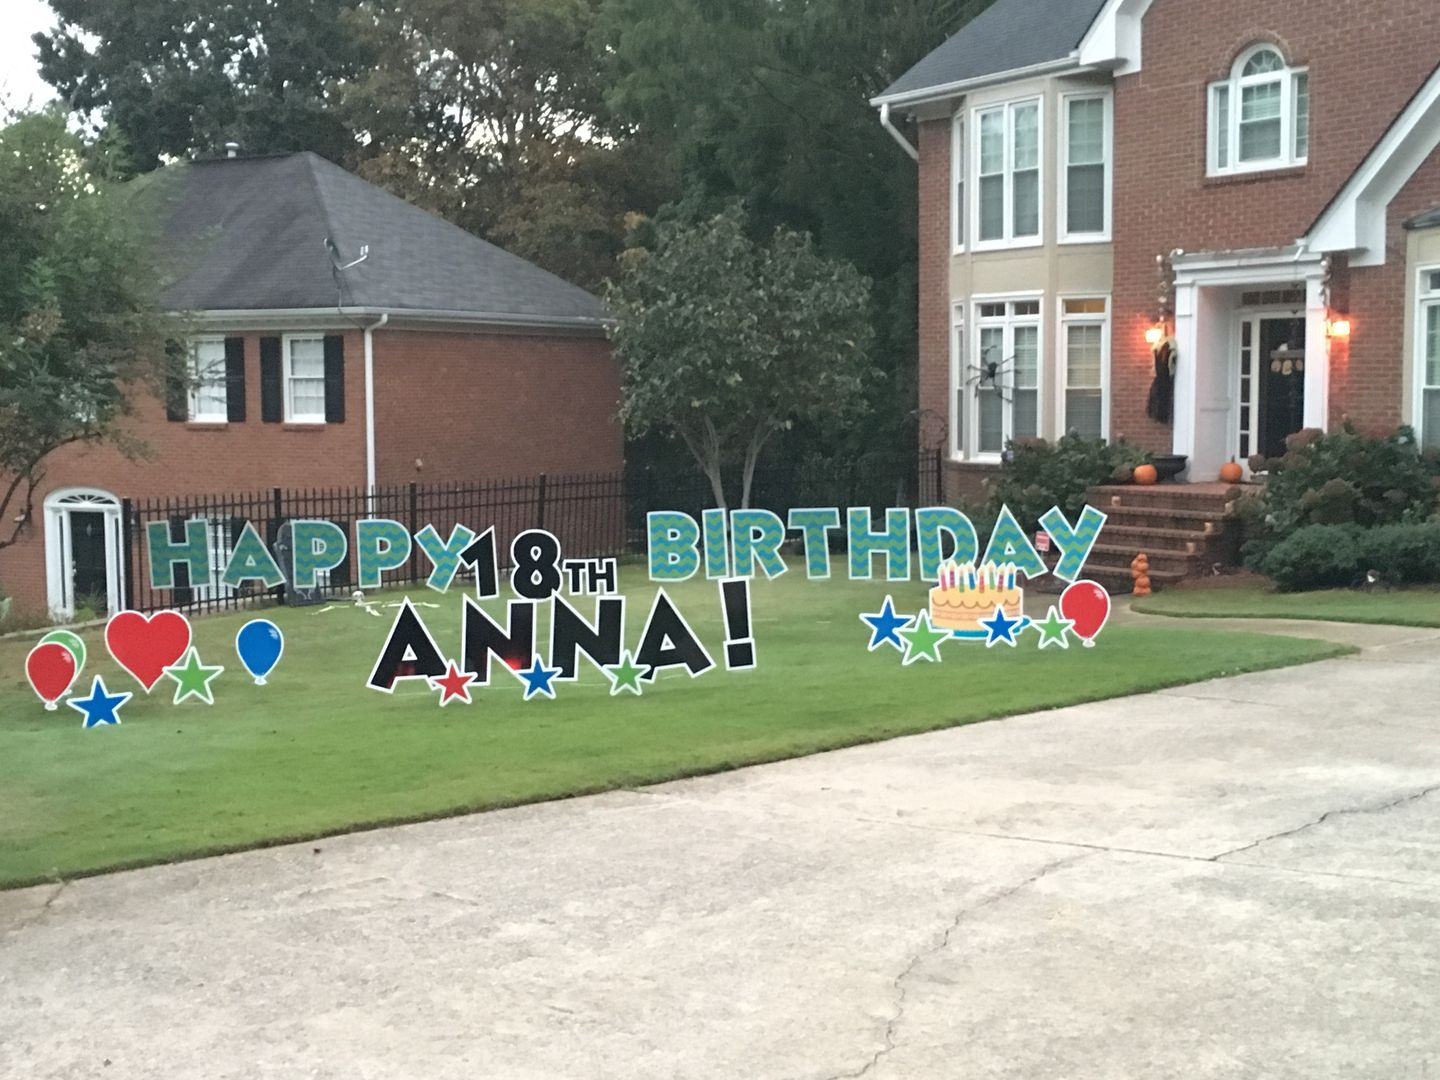 Peachtree Yard Cards Birthday Yard Signs Birthday yard